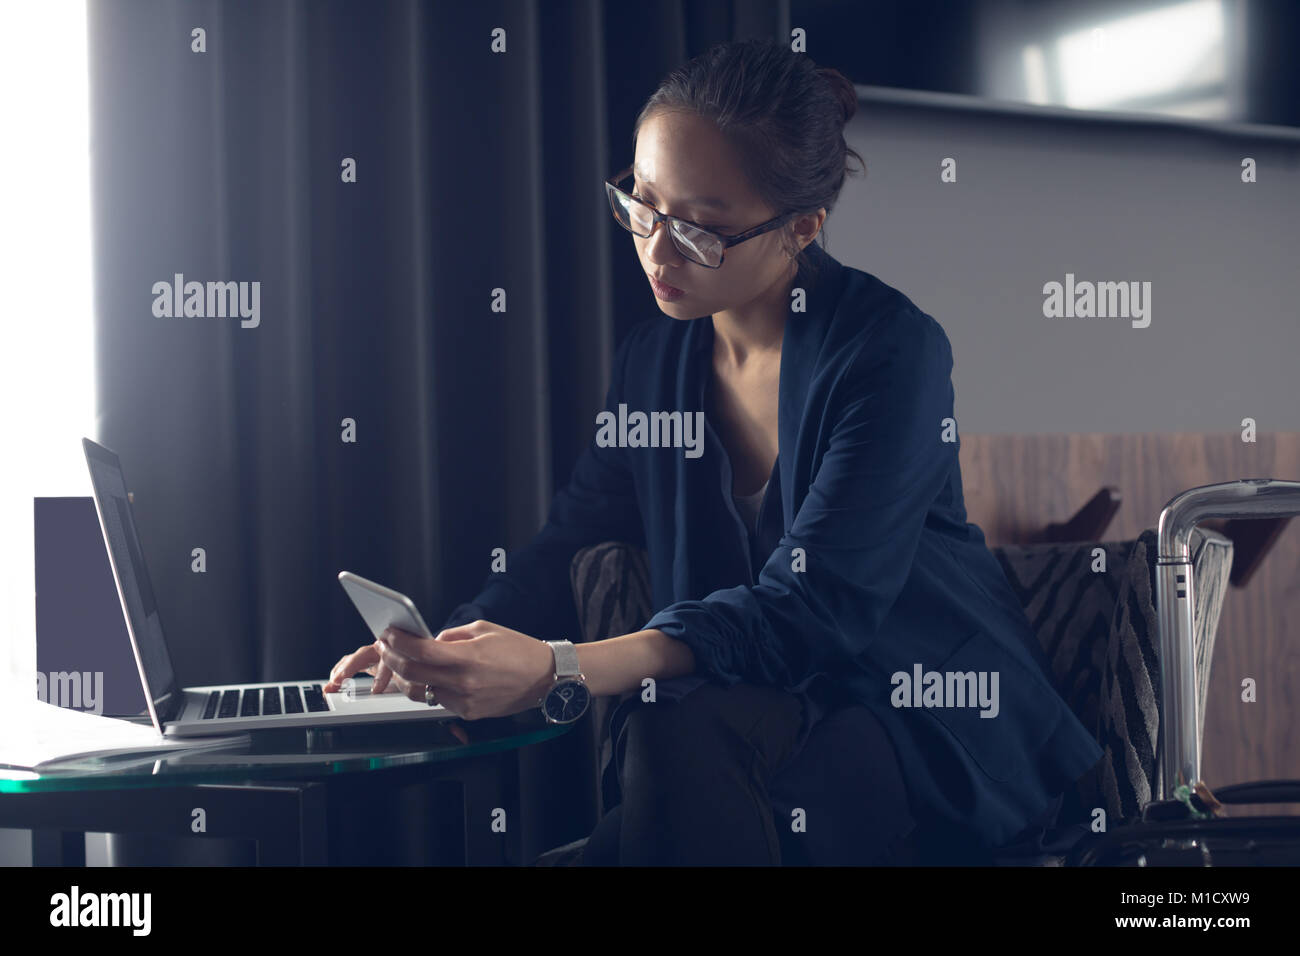 Woman using mobile phone and laptop at table Banque D'Images